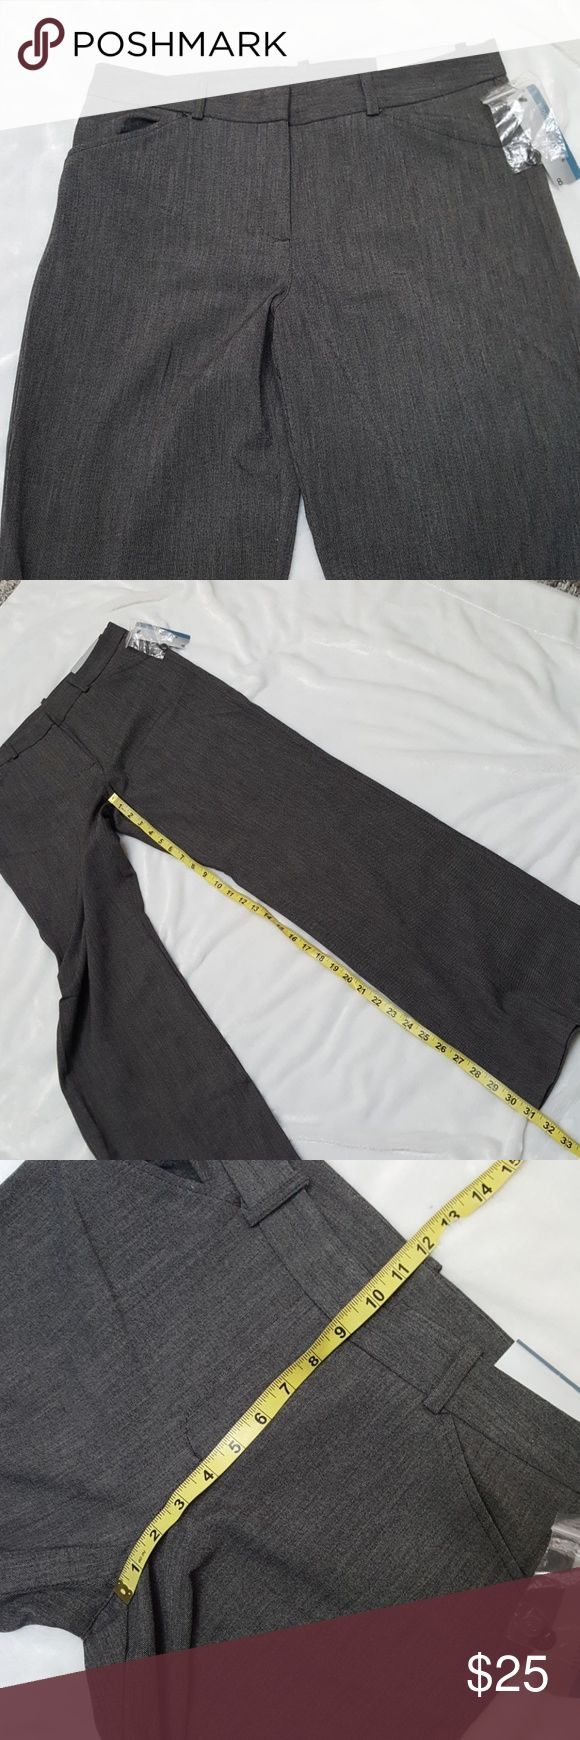 """🆕️Worthington Trouser Leg Pants sz 8X31 Nwt, has good STRETCH to them. Inseam APROX 31"""" long  I'm a Posh Ambassador shop with confidence 🤗 * trusted/high rated seller * Will ship next business day Worthington Pants Trousers"""